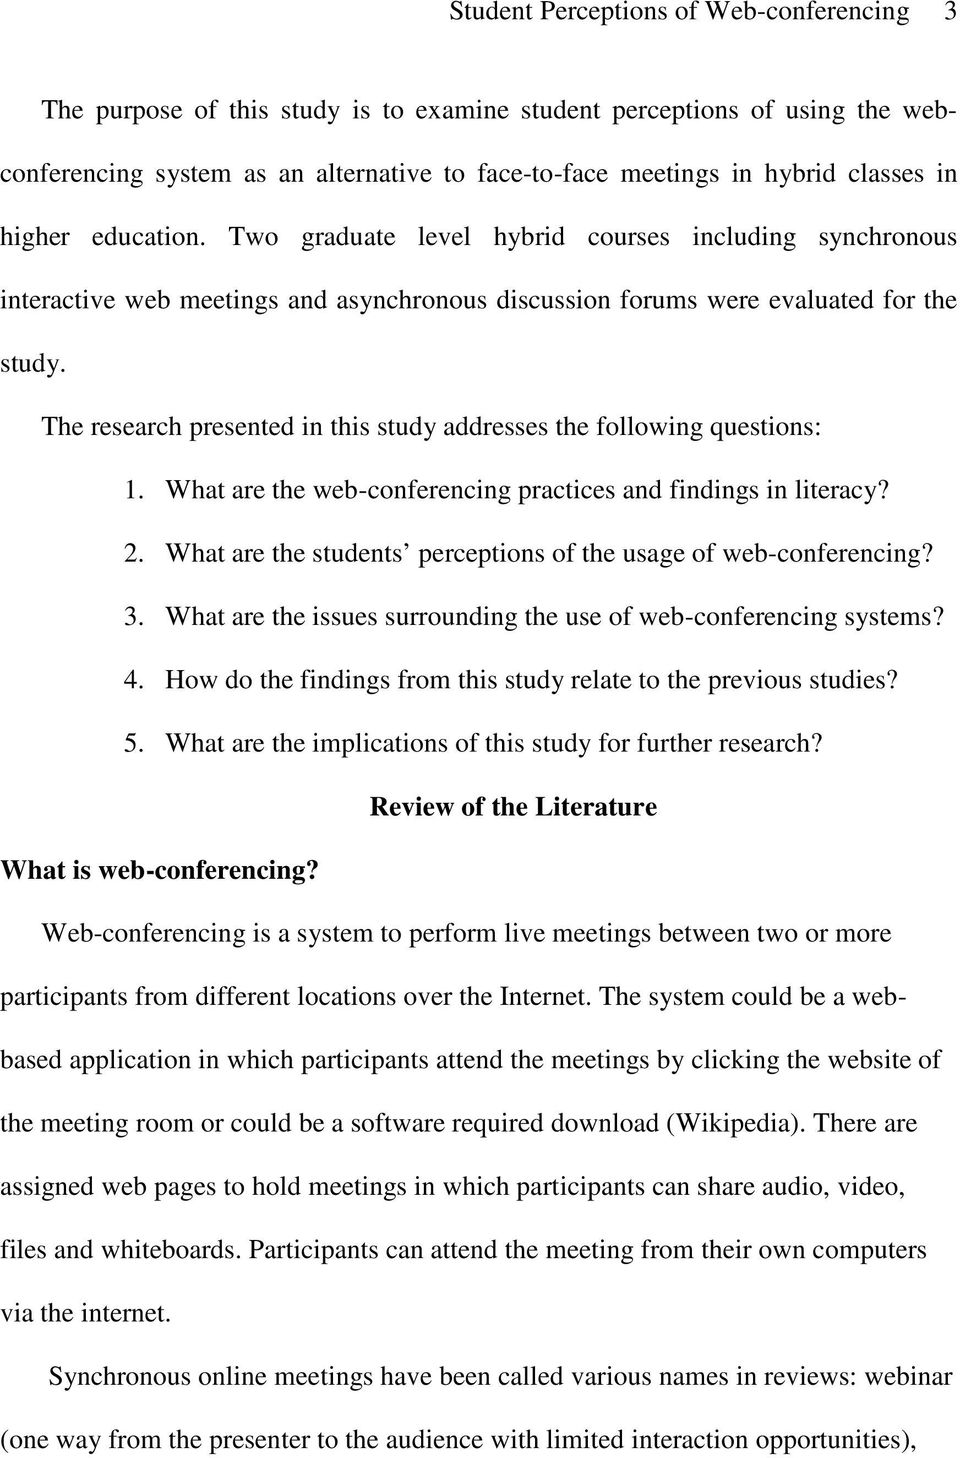 The research presented in this study addresses the following questions: 1. What are the web-conferencing practices and findings in literacy? 2.